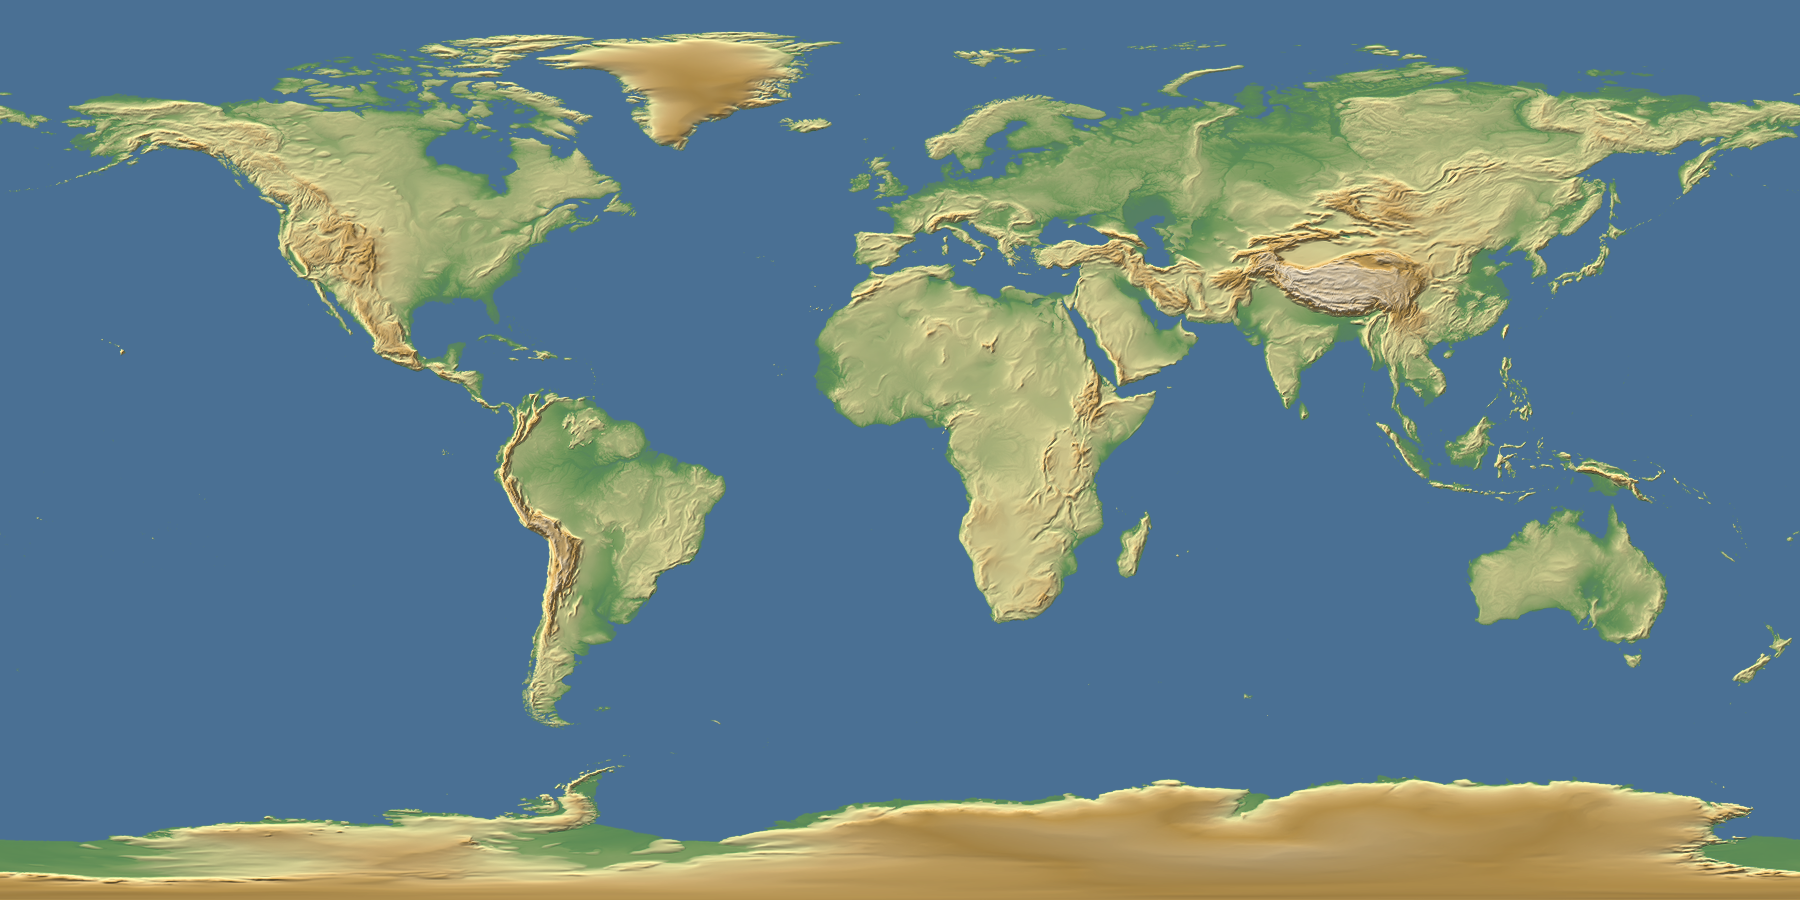 Maps Update Map Of Erth Natural Earth III Texture - Topographic map of the world